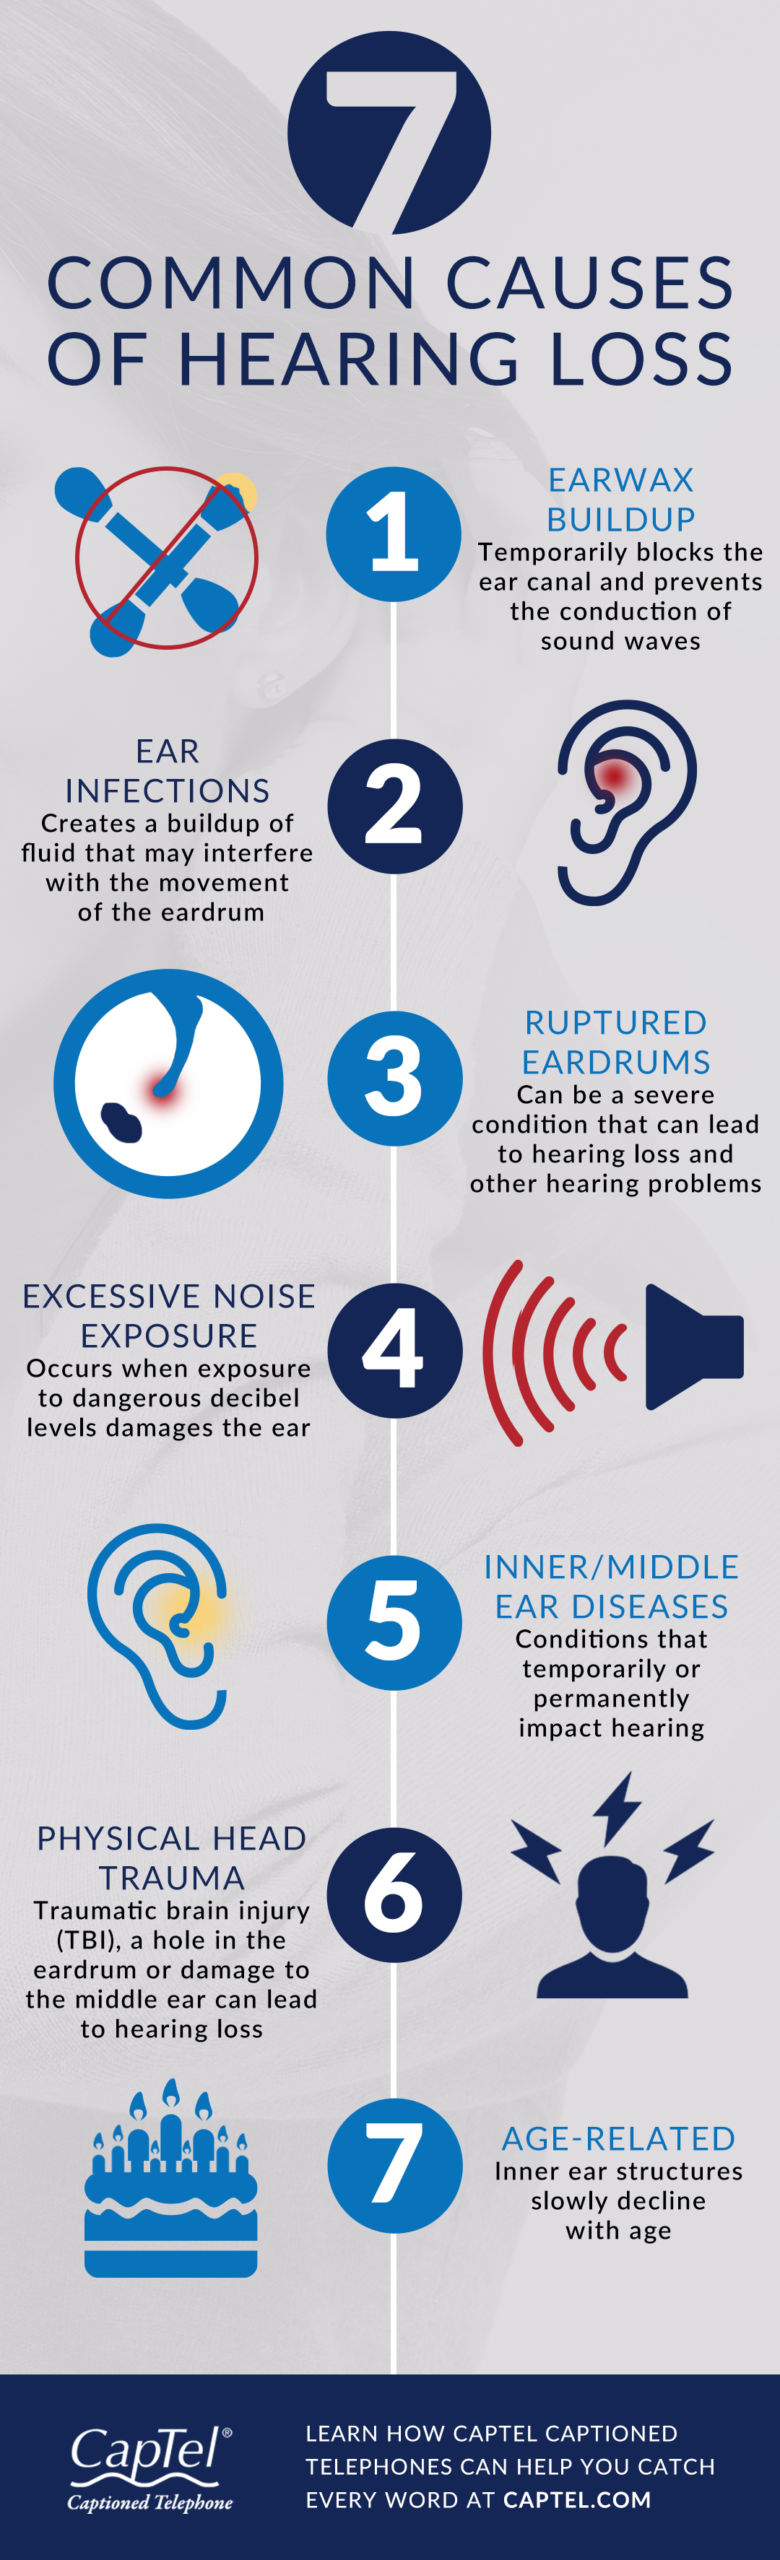 This infographic covers the most common causes of hearing loss.